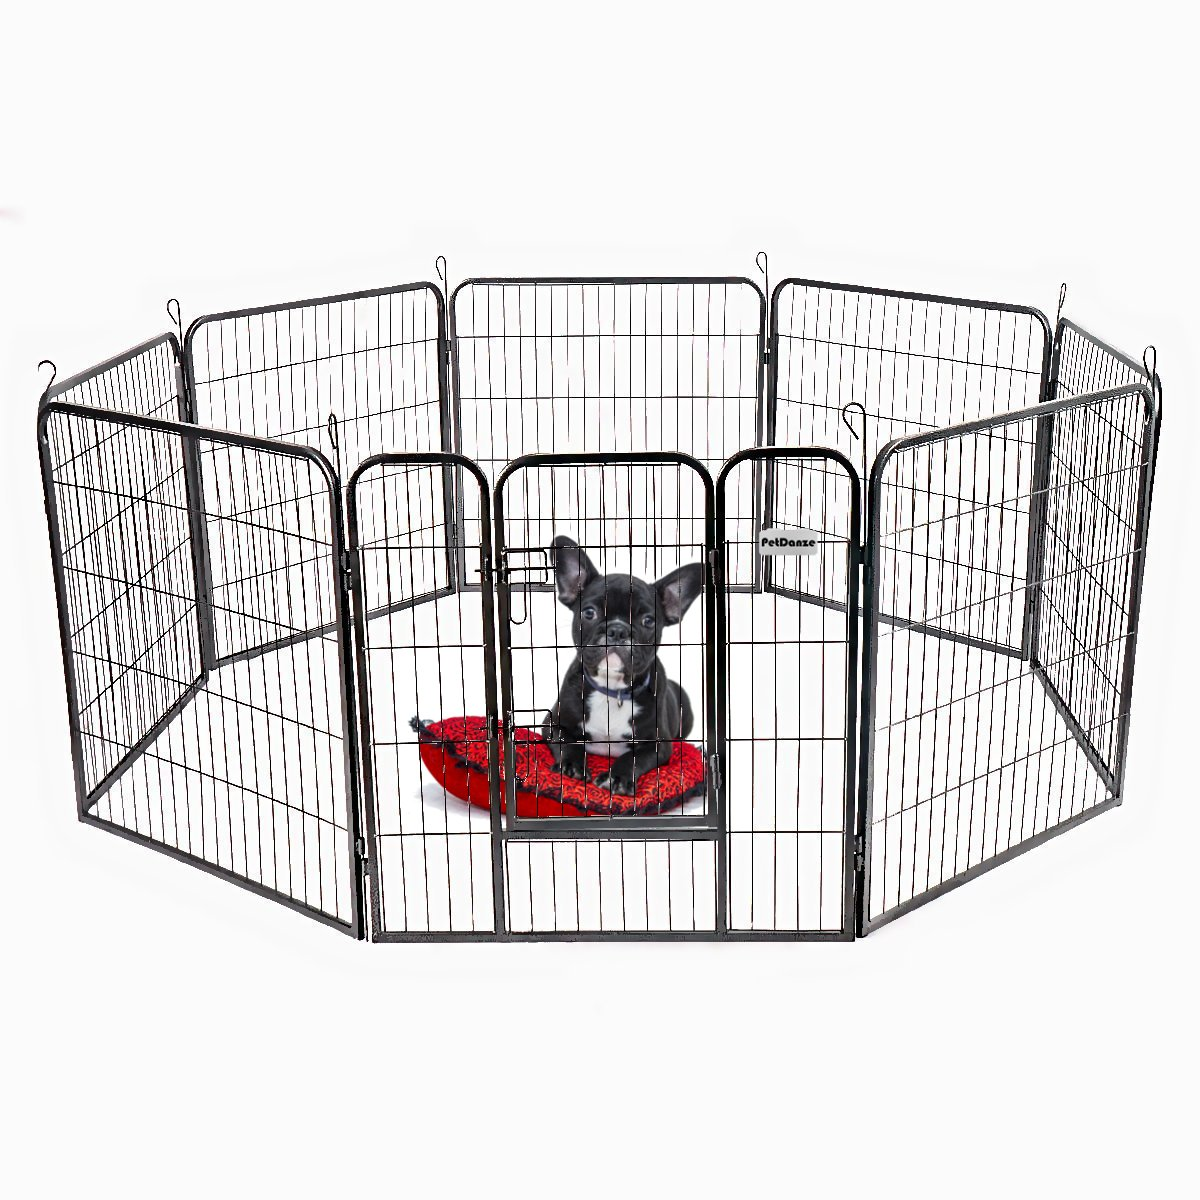 PetDanze Dog Pen Metal Fence Gate Portable Outdoor | Heavy Duty Outside Pet Large Playpen Exercise RV Play Yard | Indoor Puppy Kennel Cage Crate Enclosures | 32'' Height 8 Panel by PetDanze